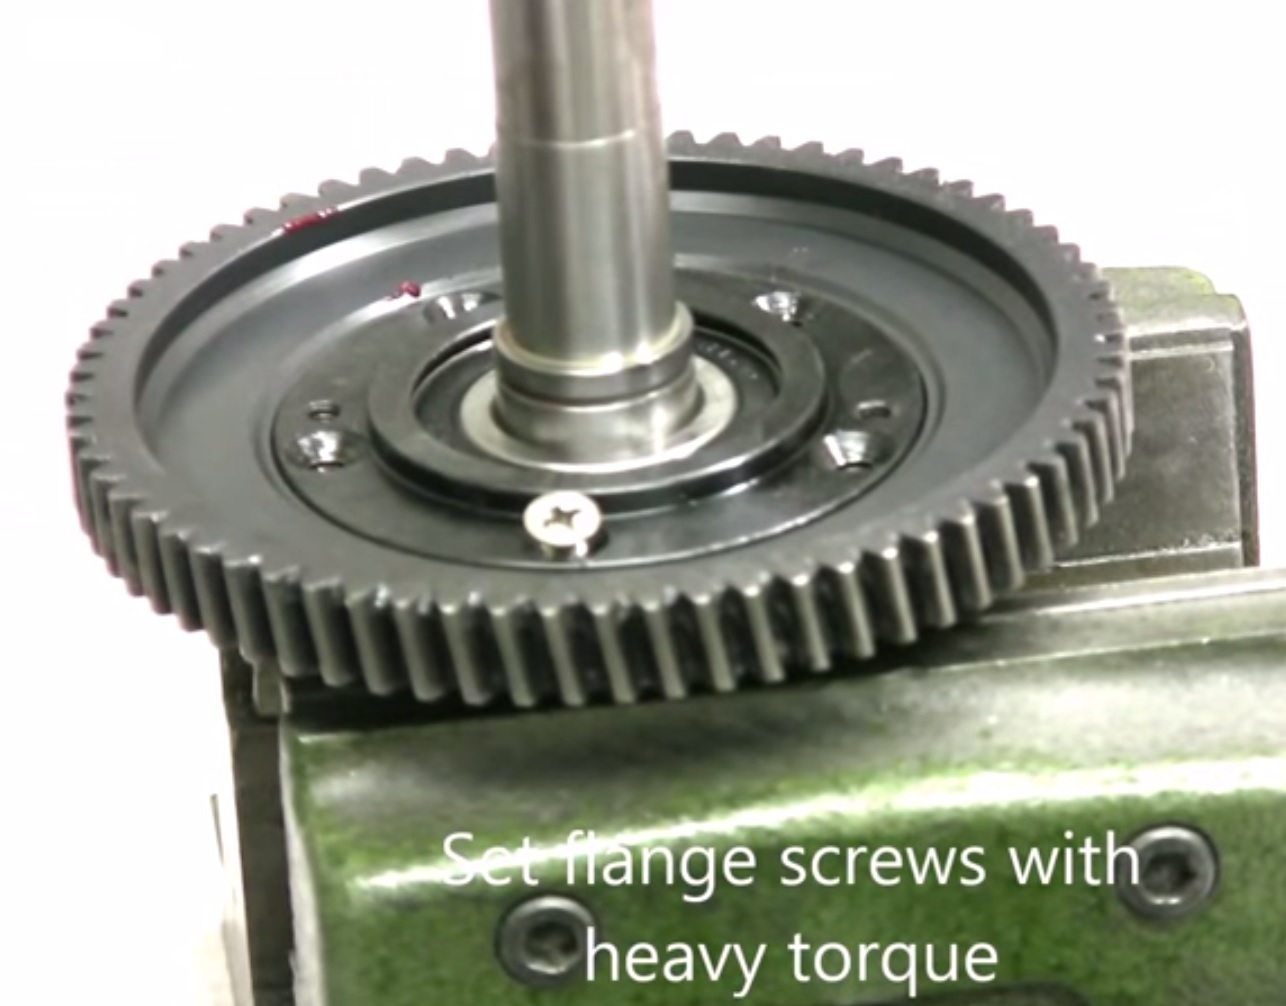 Troubleshooting Problems On Your Bbs02 Unit Circuit Bending Tips Resistance Substitution Wheel Is Dead How To These Screws Must Be Locktited And Torqued Down As Hard You Can